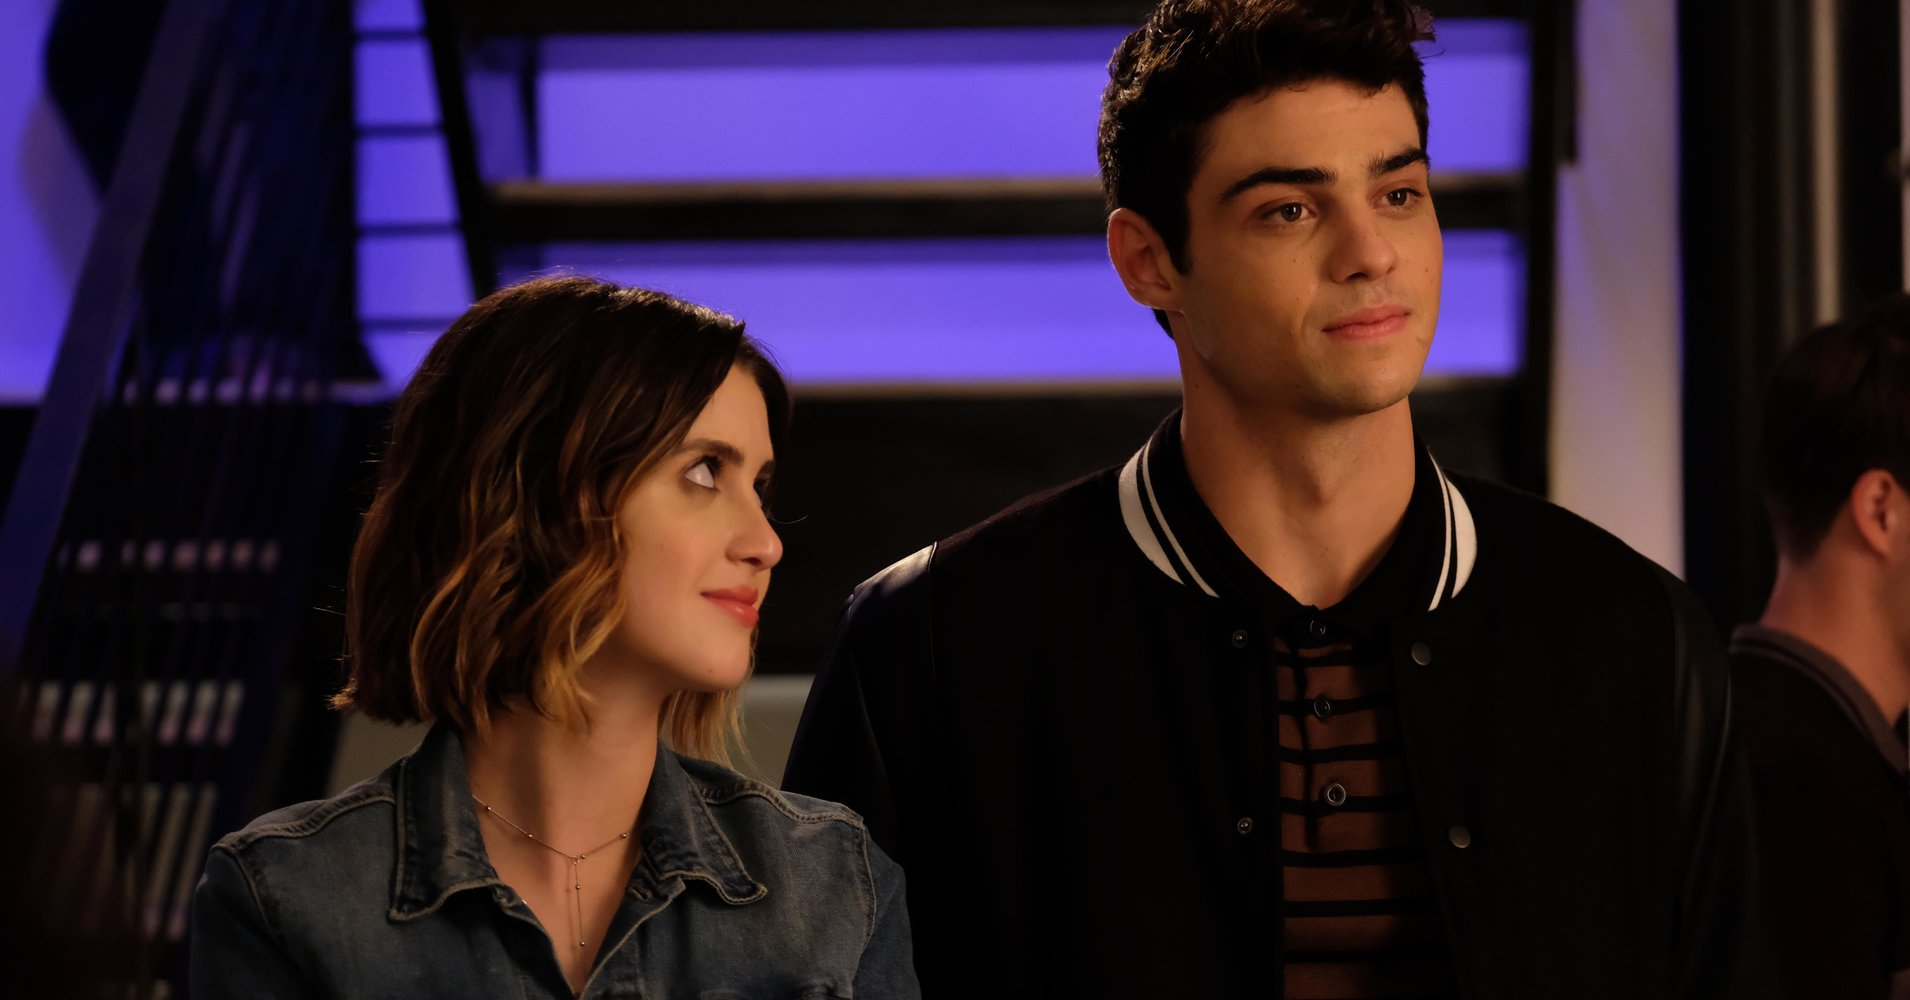 'The Perfect Date' Makes For Mediocre Netflix And Chill